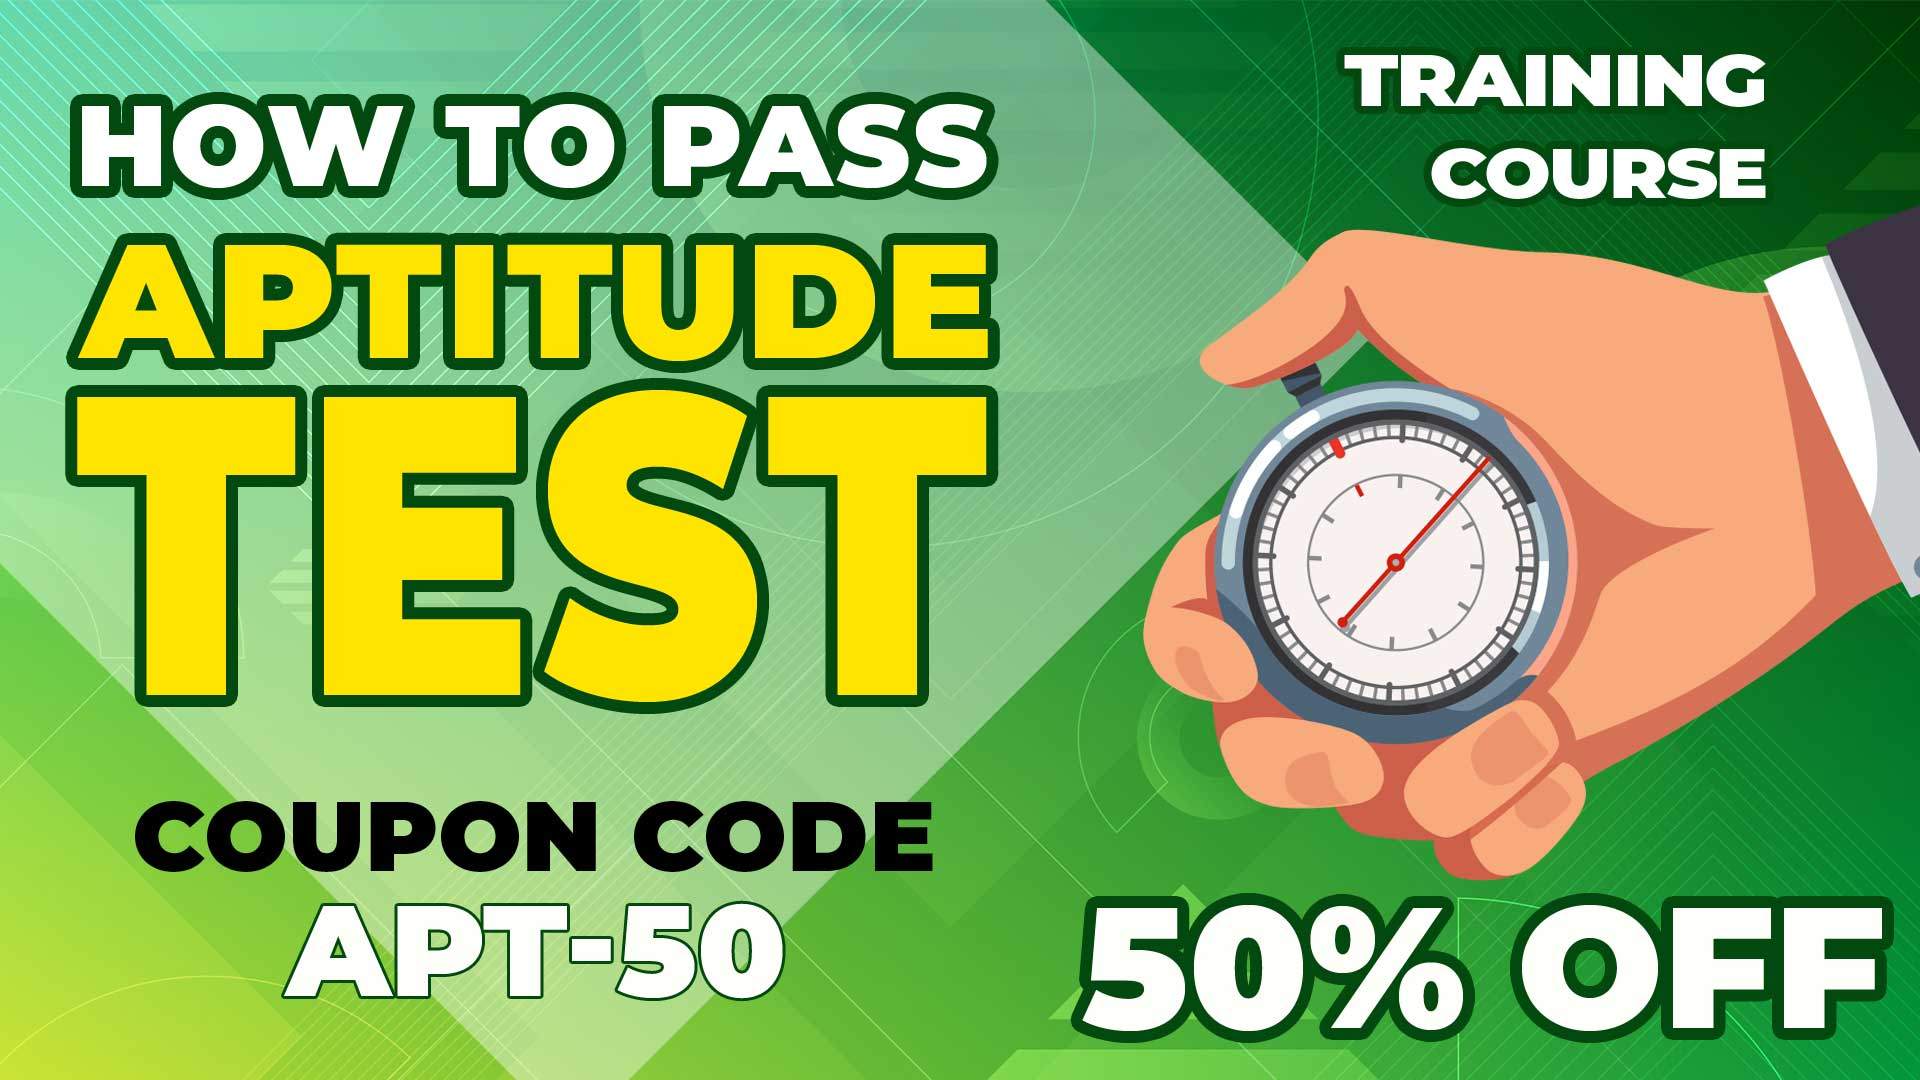 How to Pass Aptitude Test - Online Training Course